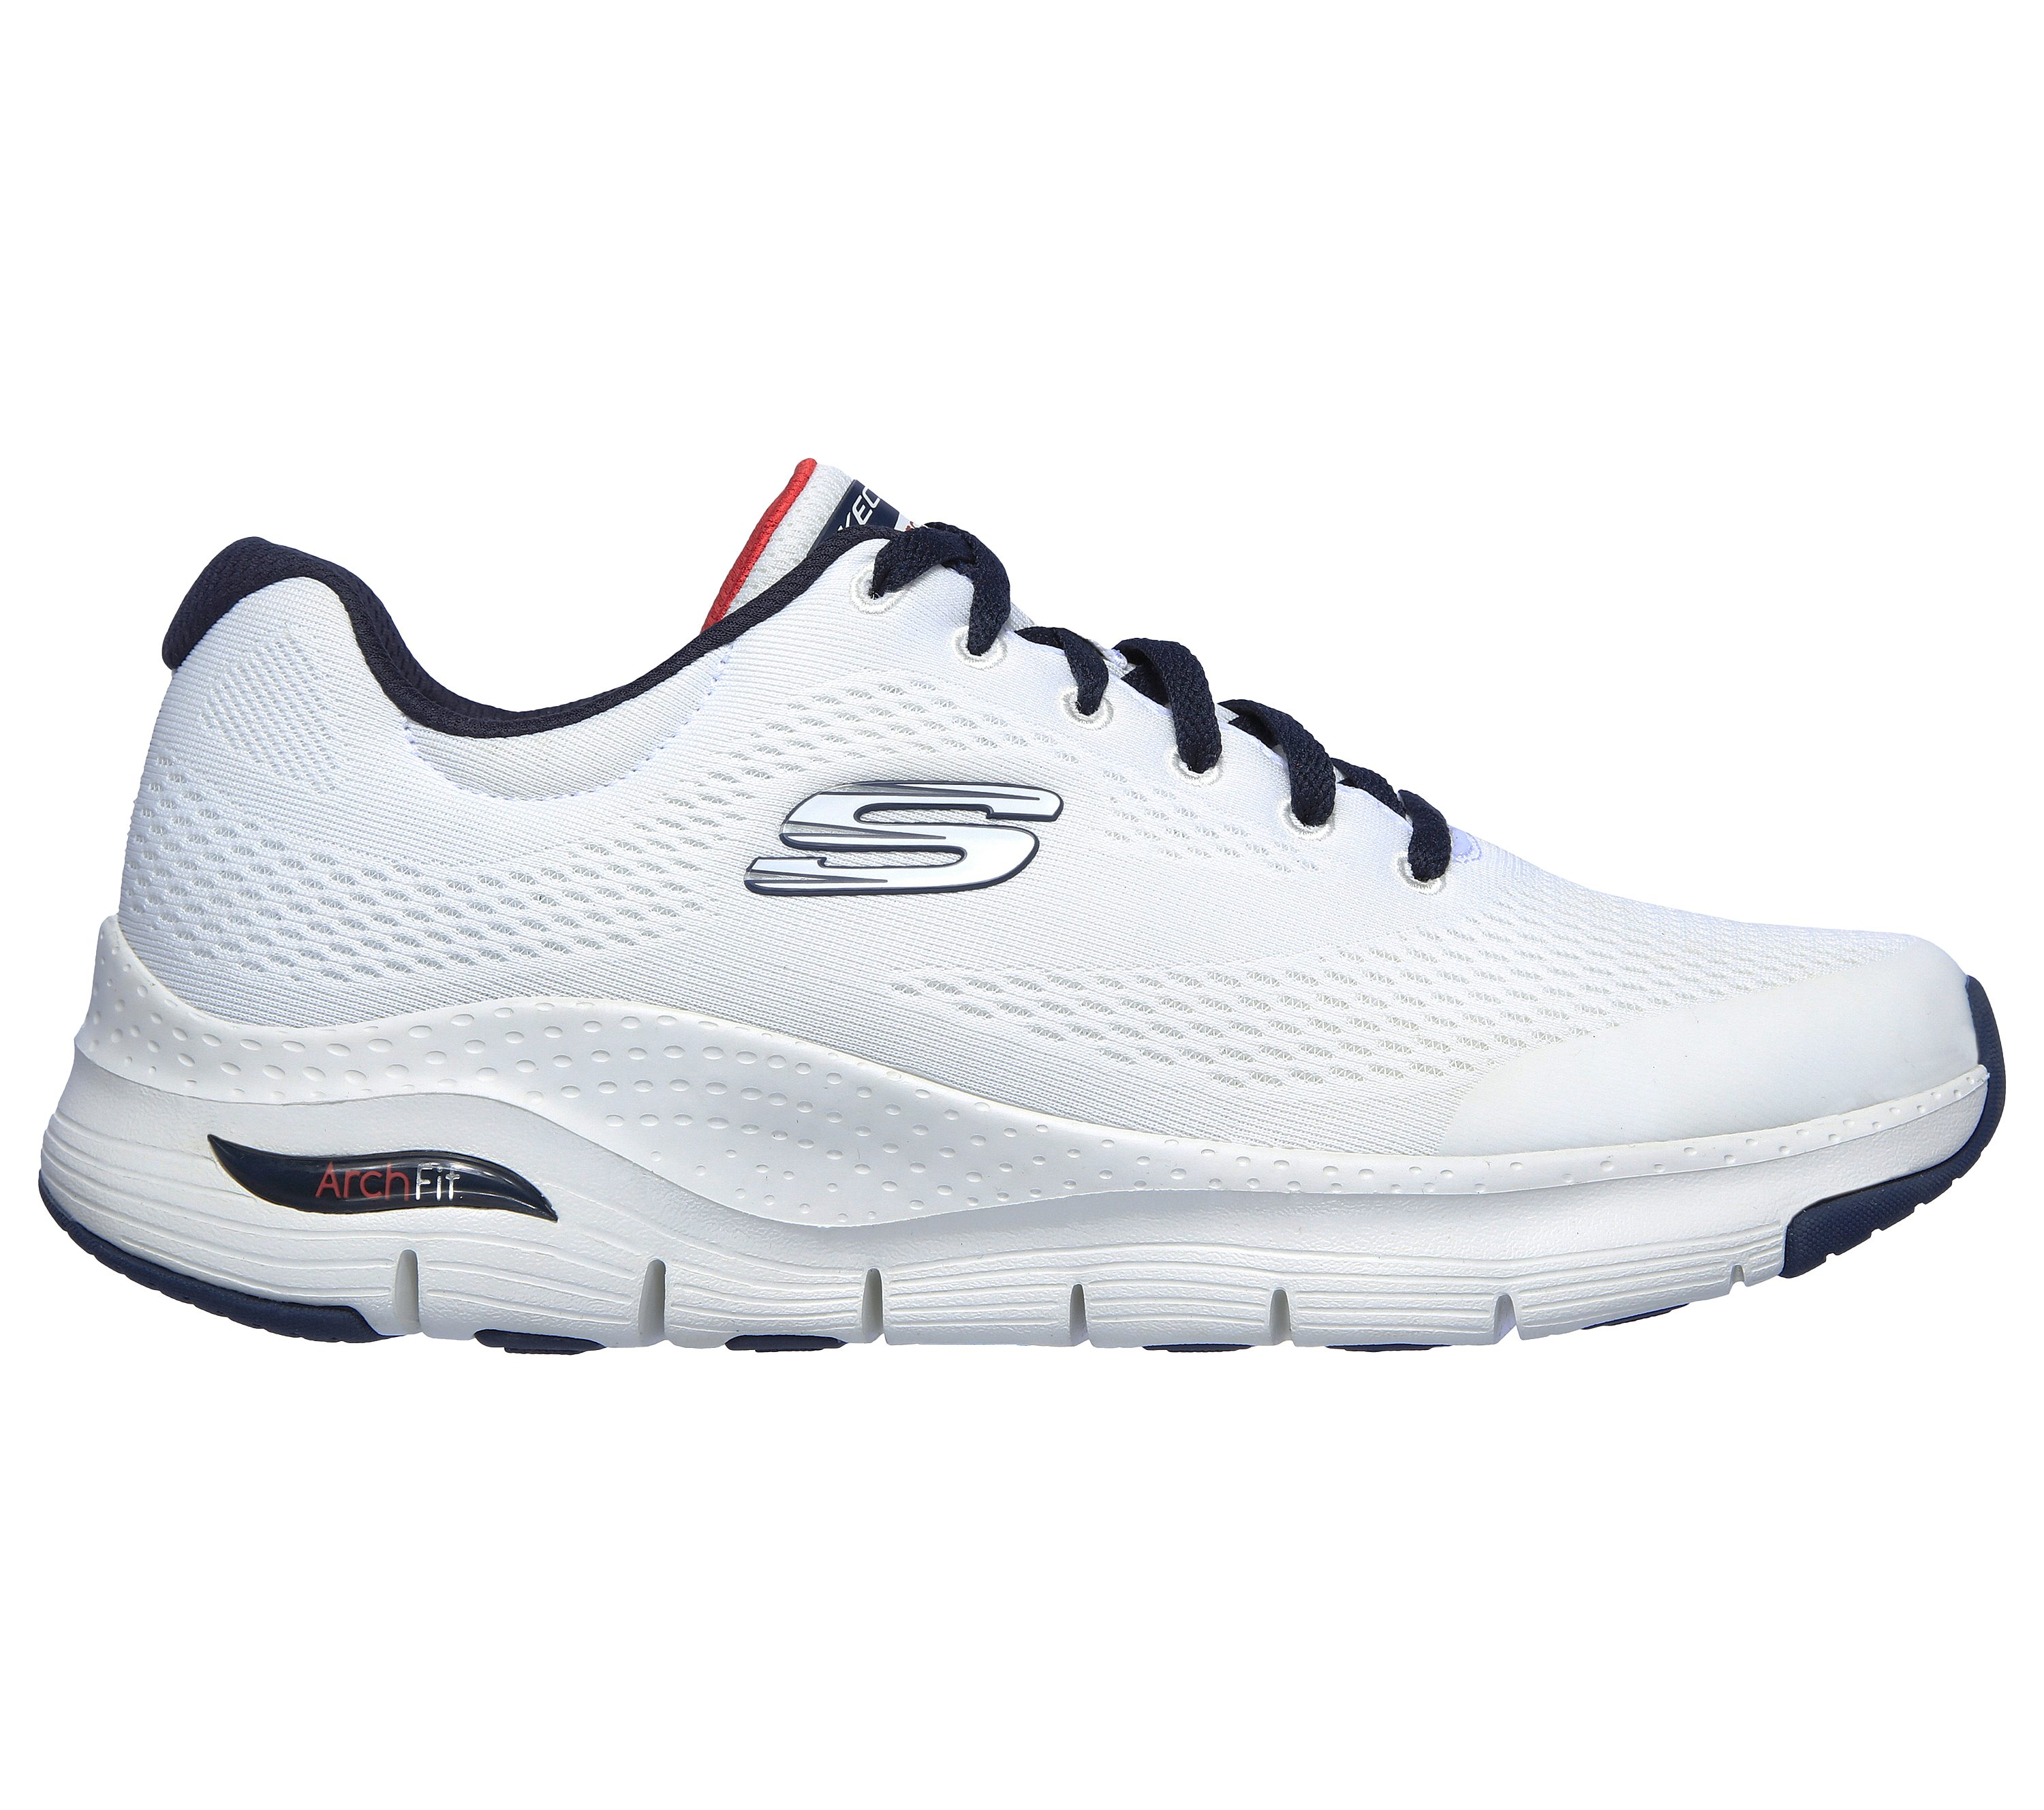 5169 ancient architecture essay.php]ancient Hoka One One Speed Instinct 2 Trail Running Shoes Men s MEC